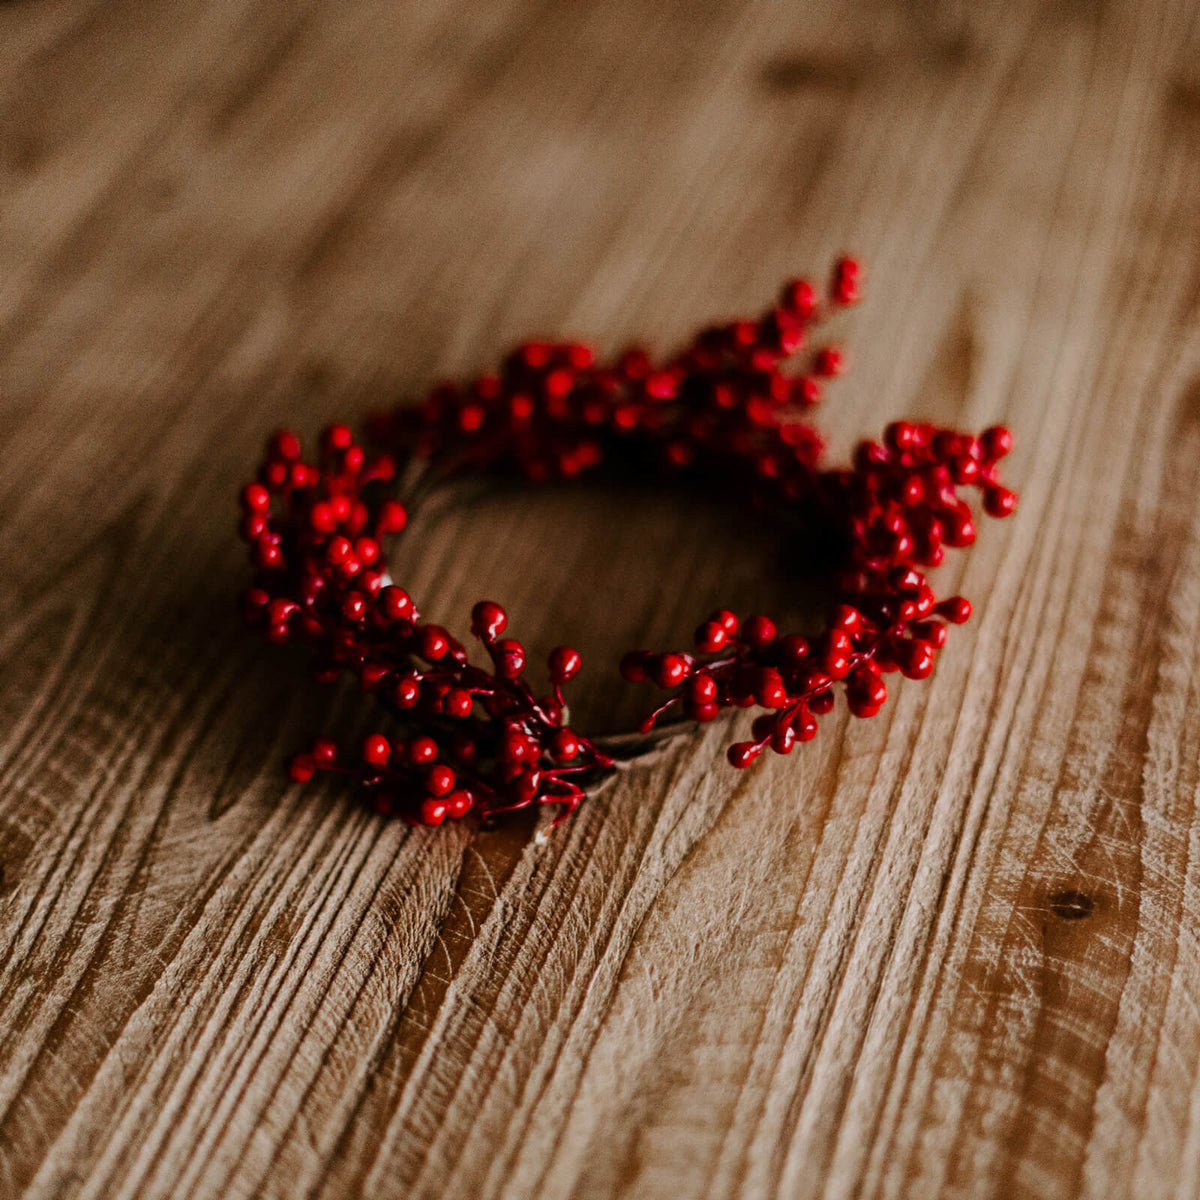 A small four and half inch diameter ring with little shiny red faux berries ready for a Christmas dinner table